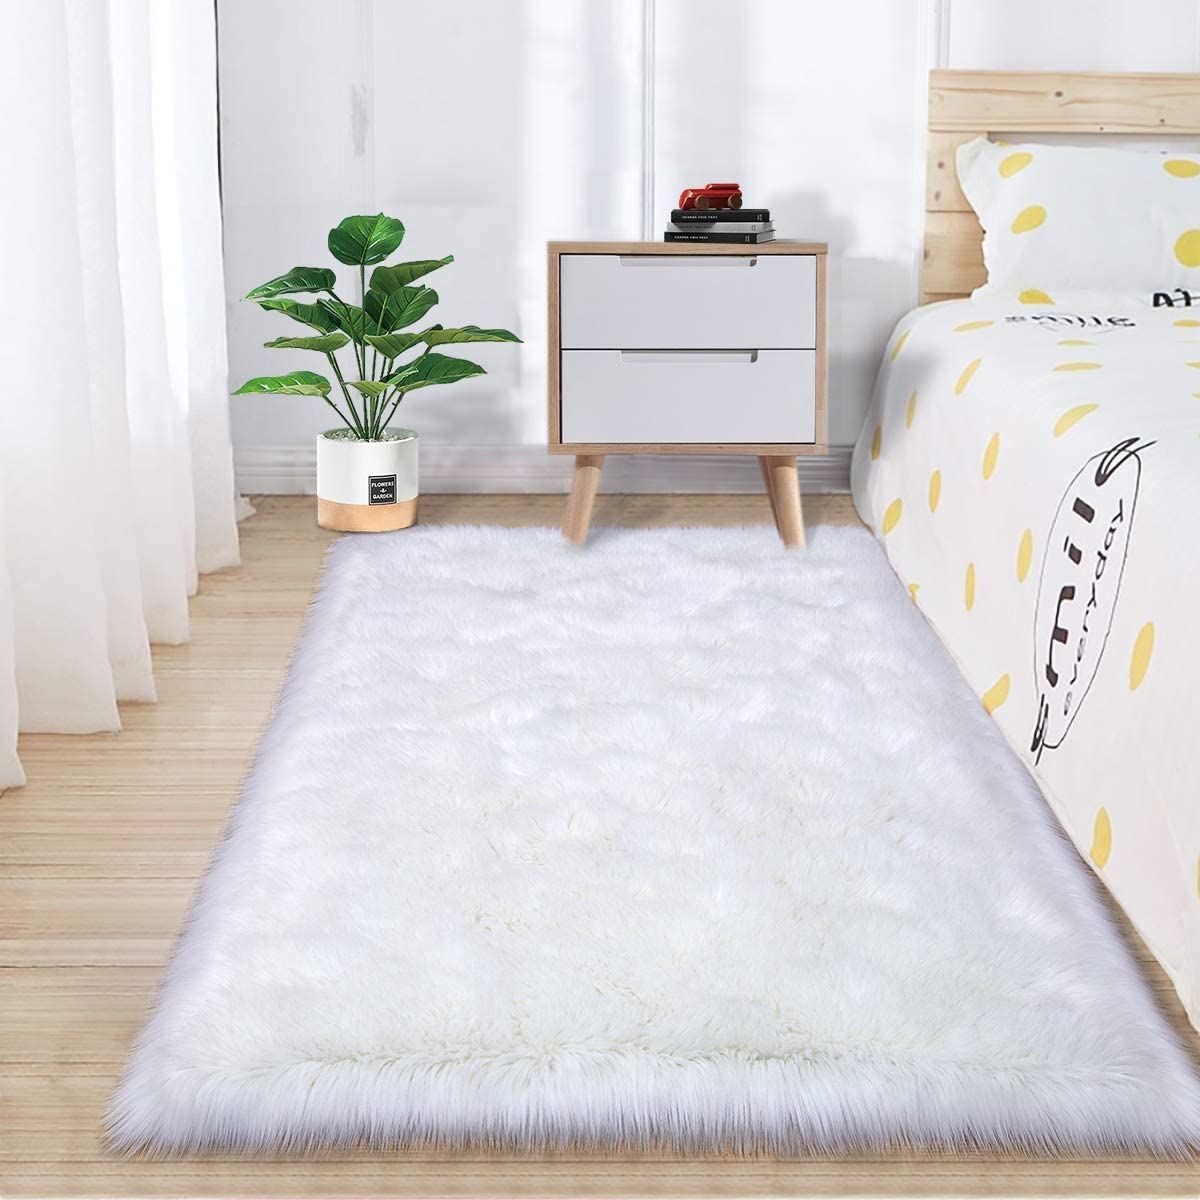 Zareas Super Soft Fluffy Bedroom Rugs, Luxurious Plush Faux Fur Sheepskin Area Rugs for Living Room Indoor Floor Couch Chair Vanity Home Decor Nursery Kids Girls Shaggy Carpet, White (2 x 3 Feet)